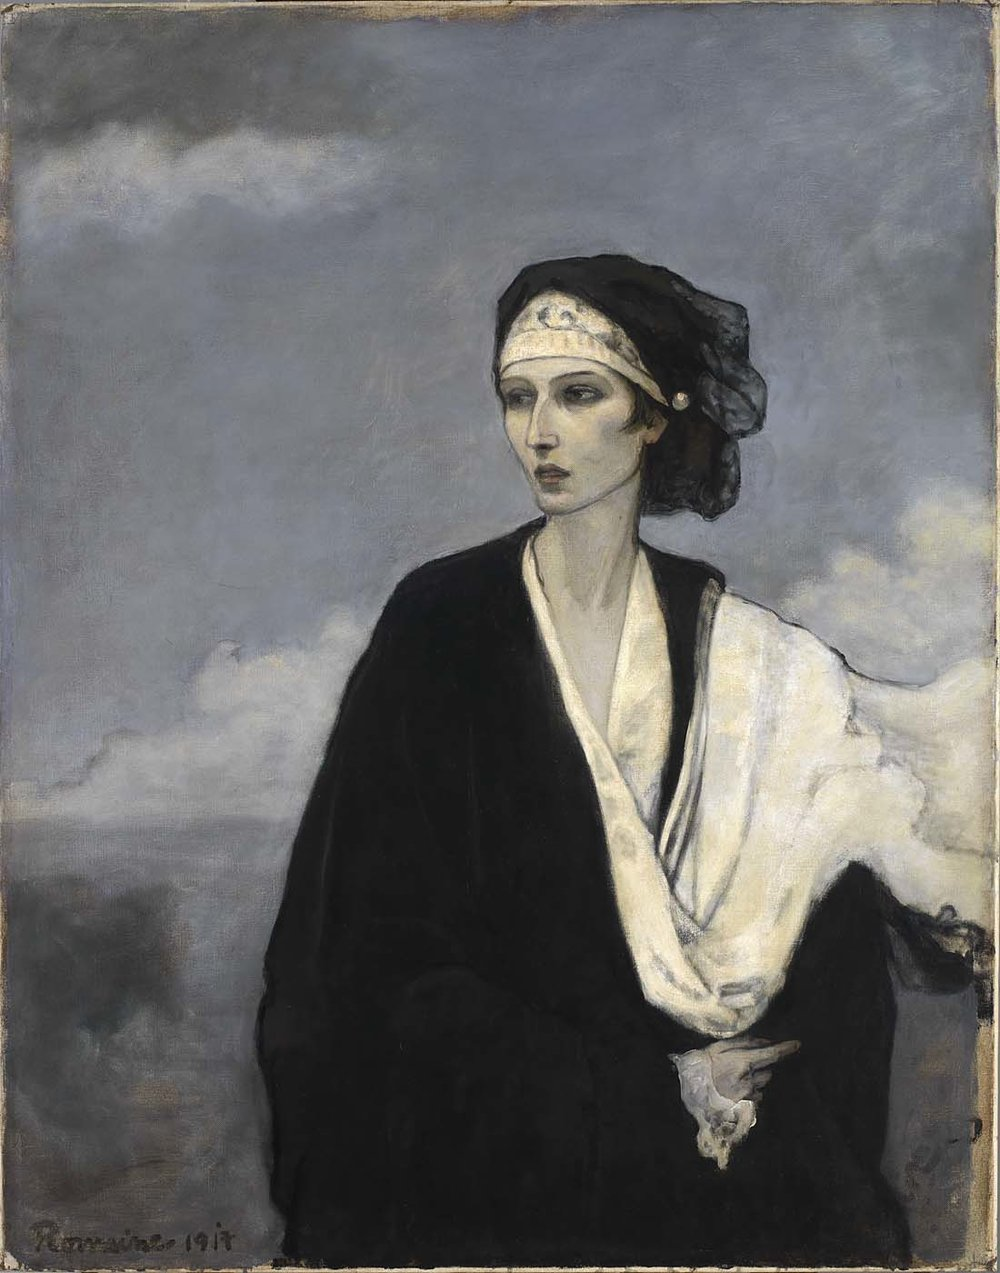 Romaine Brooks,  Ida Rubinstein , 1917, Oil on Canvas, Courtesy of the Smithsonian American Art Museum.